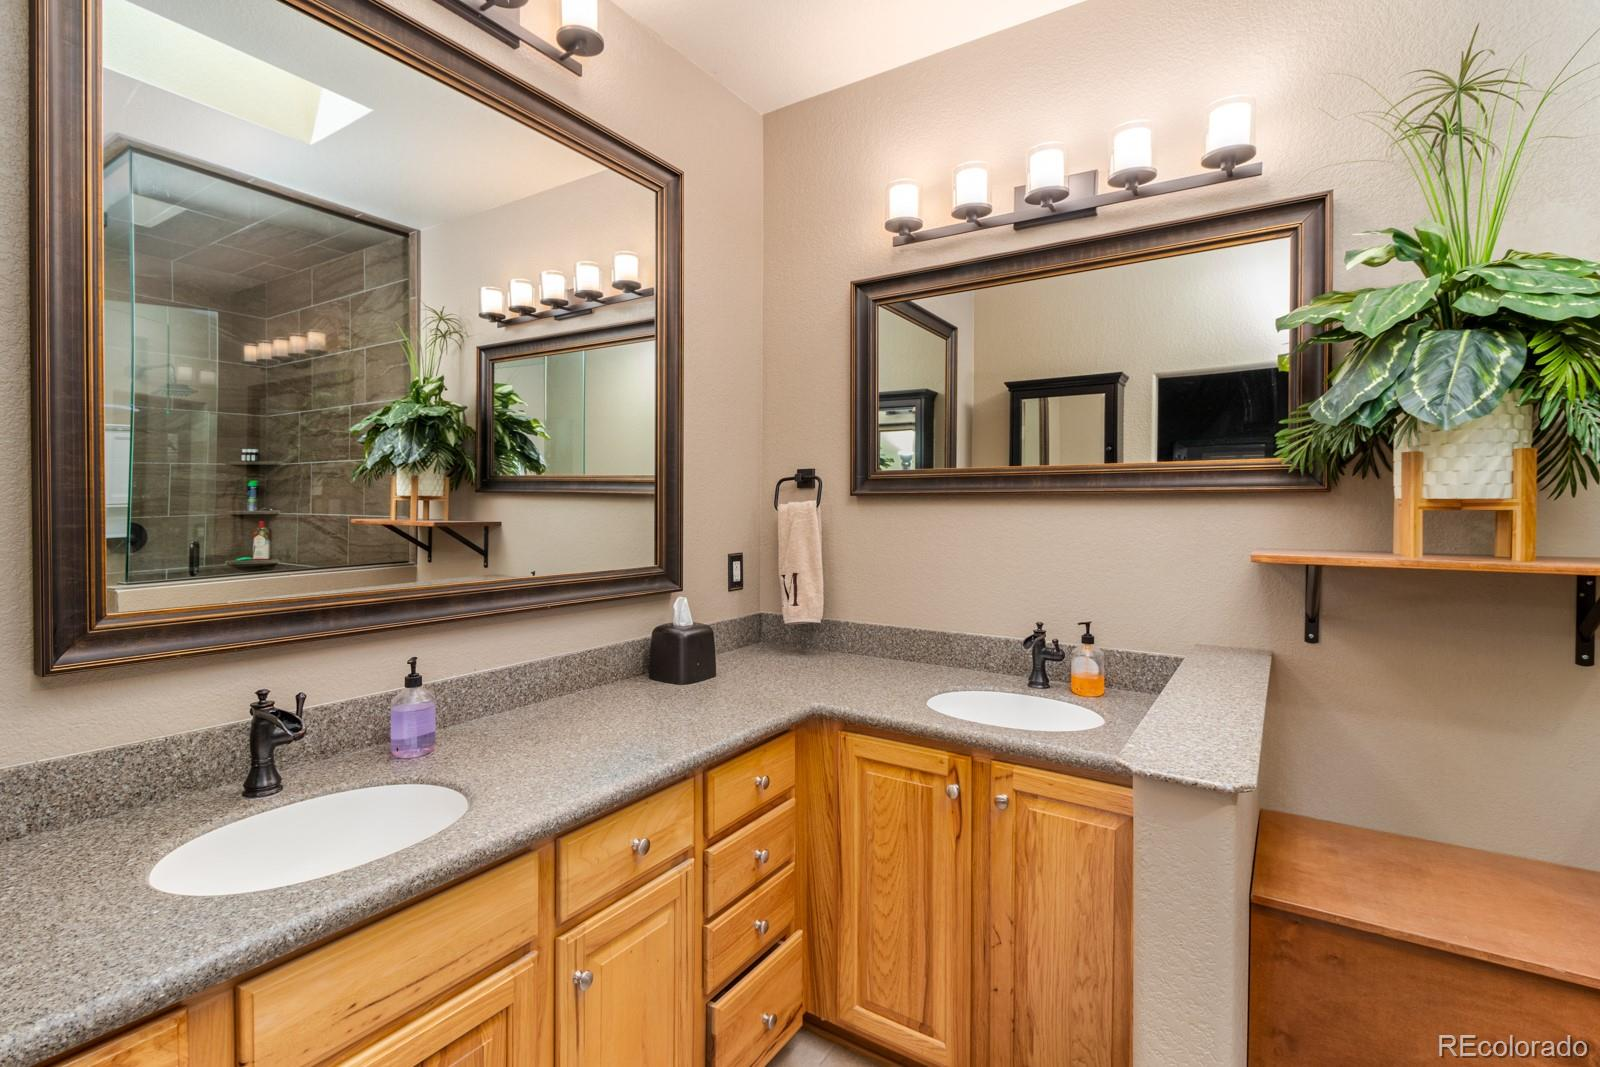 MLS# 7685605 - 18 - 8945 Tappy Toorie Circle, Highlands Ranch, CO 80129